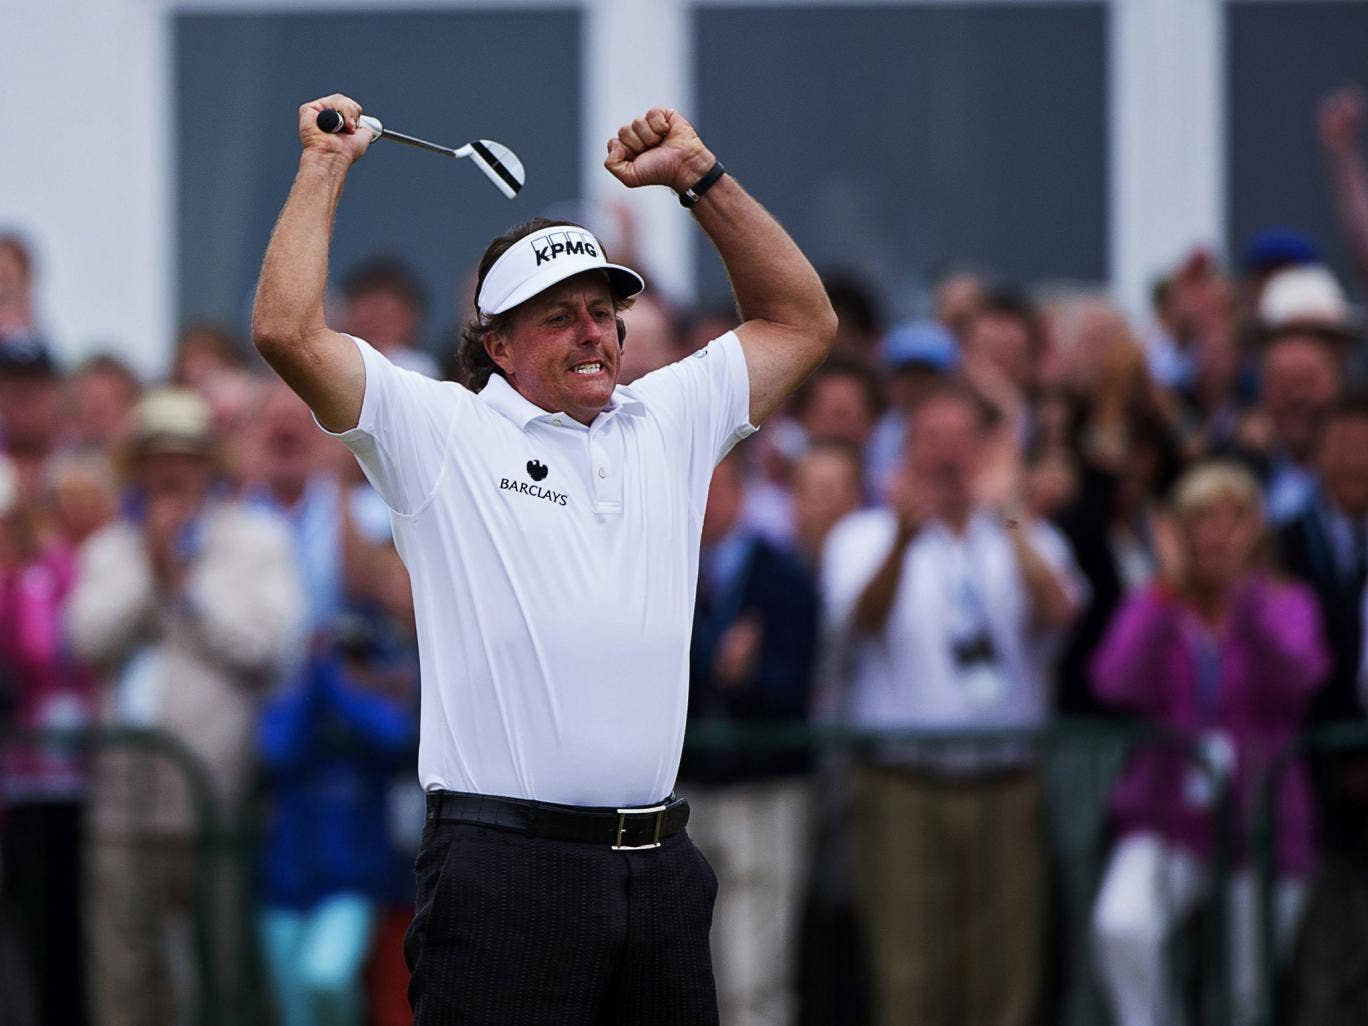 Phil Mickelson celebrates his birdie on the 18th